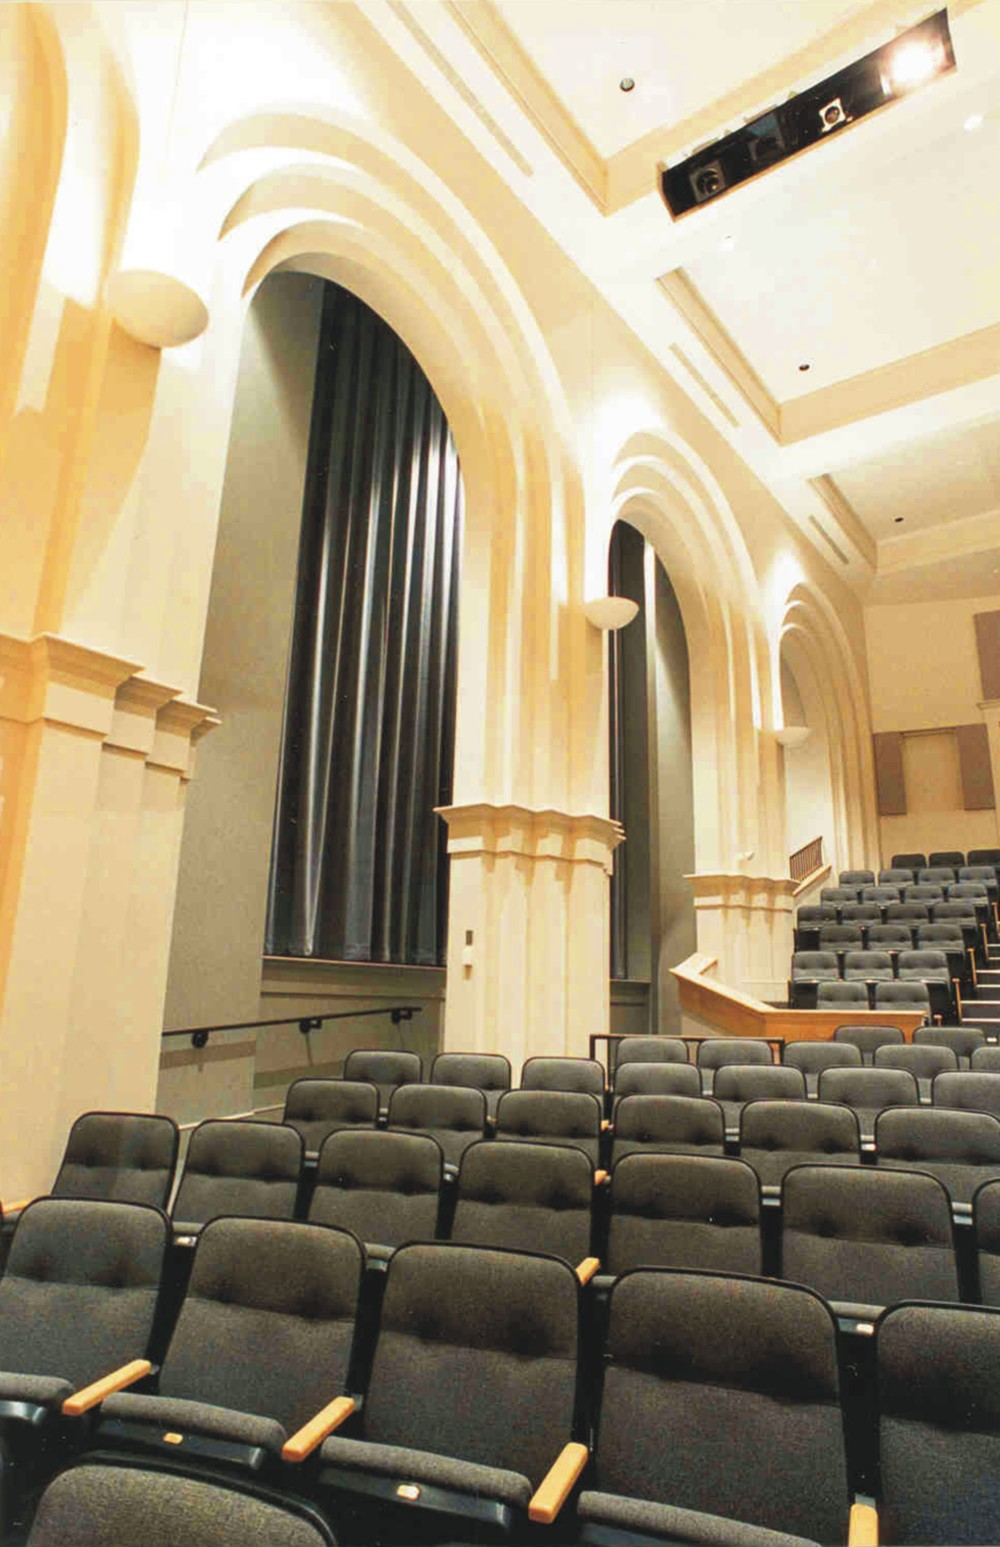 www.rcmarchitects.com - bluffton university - yoder recital hall (3)